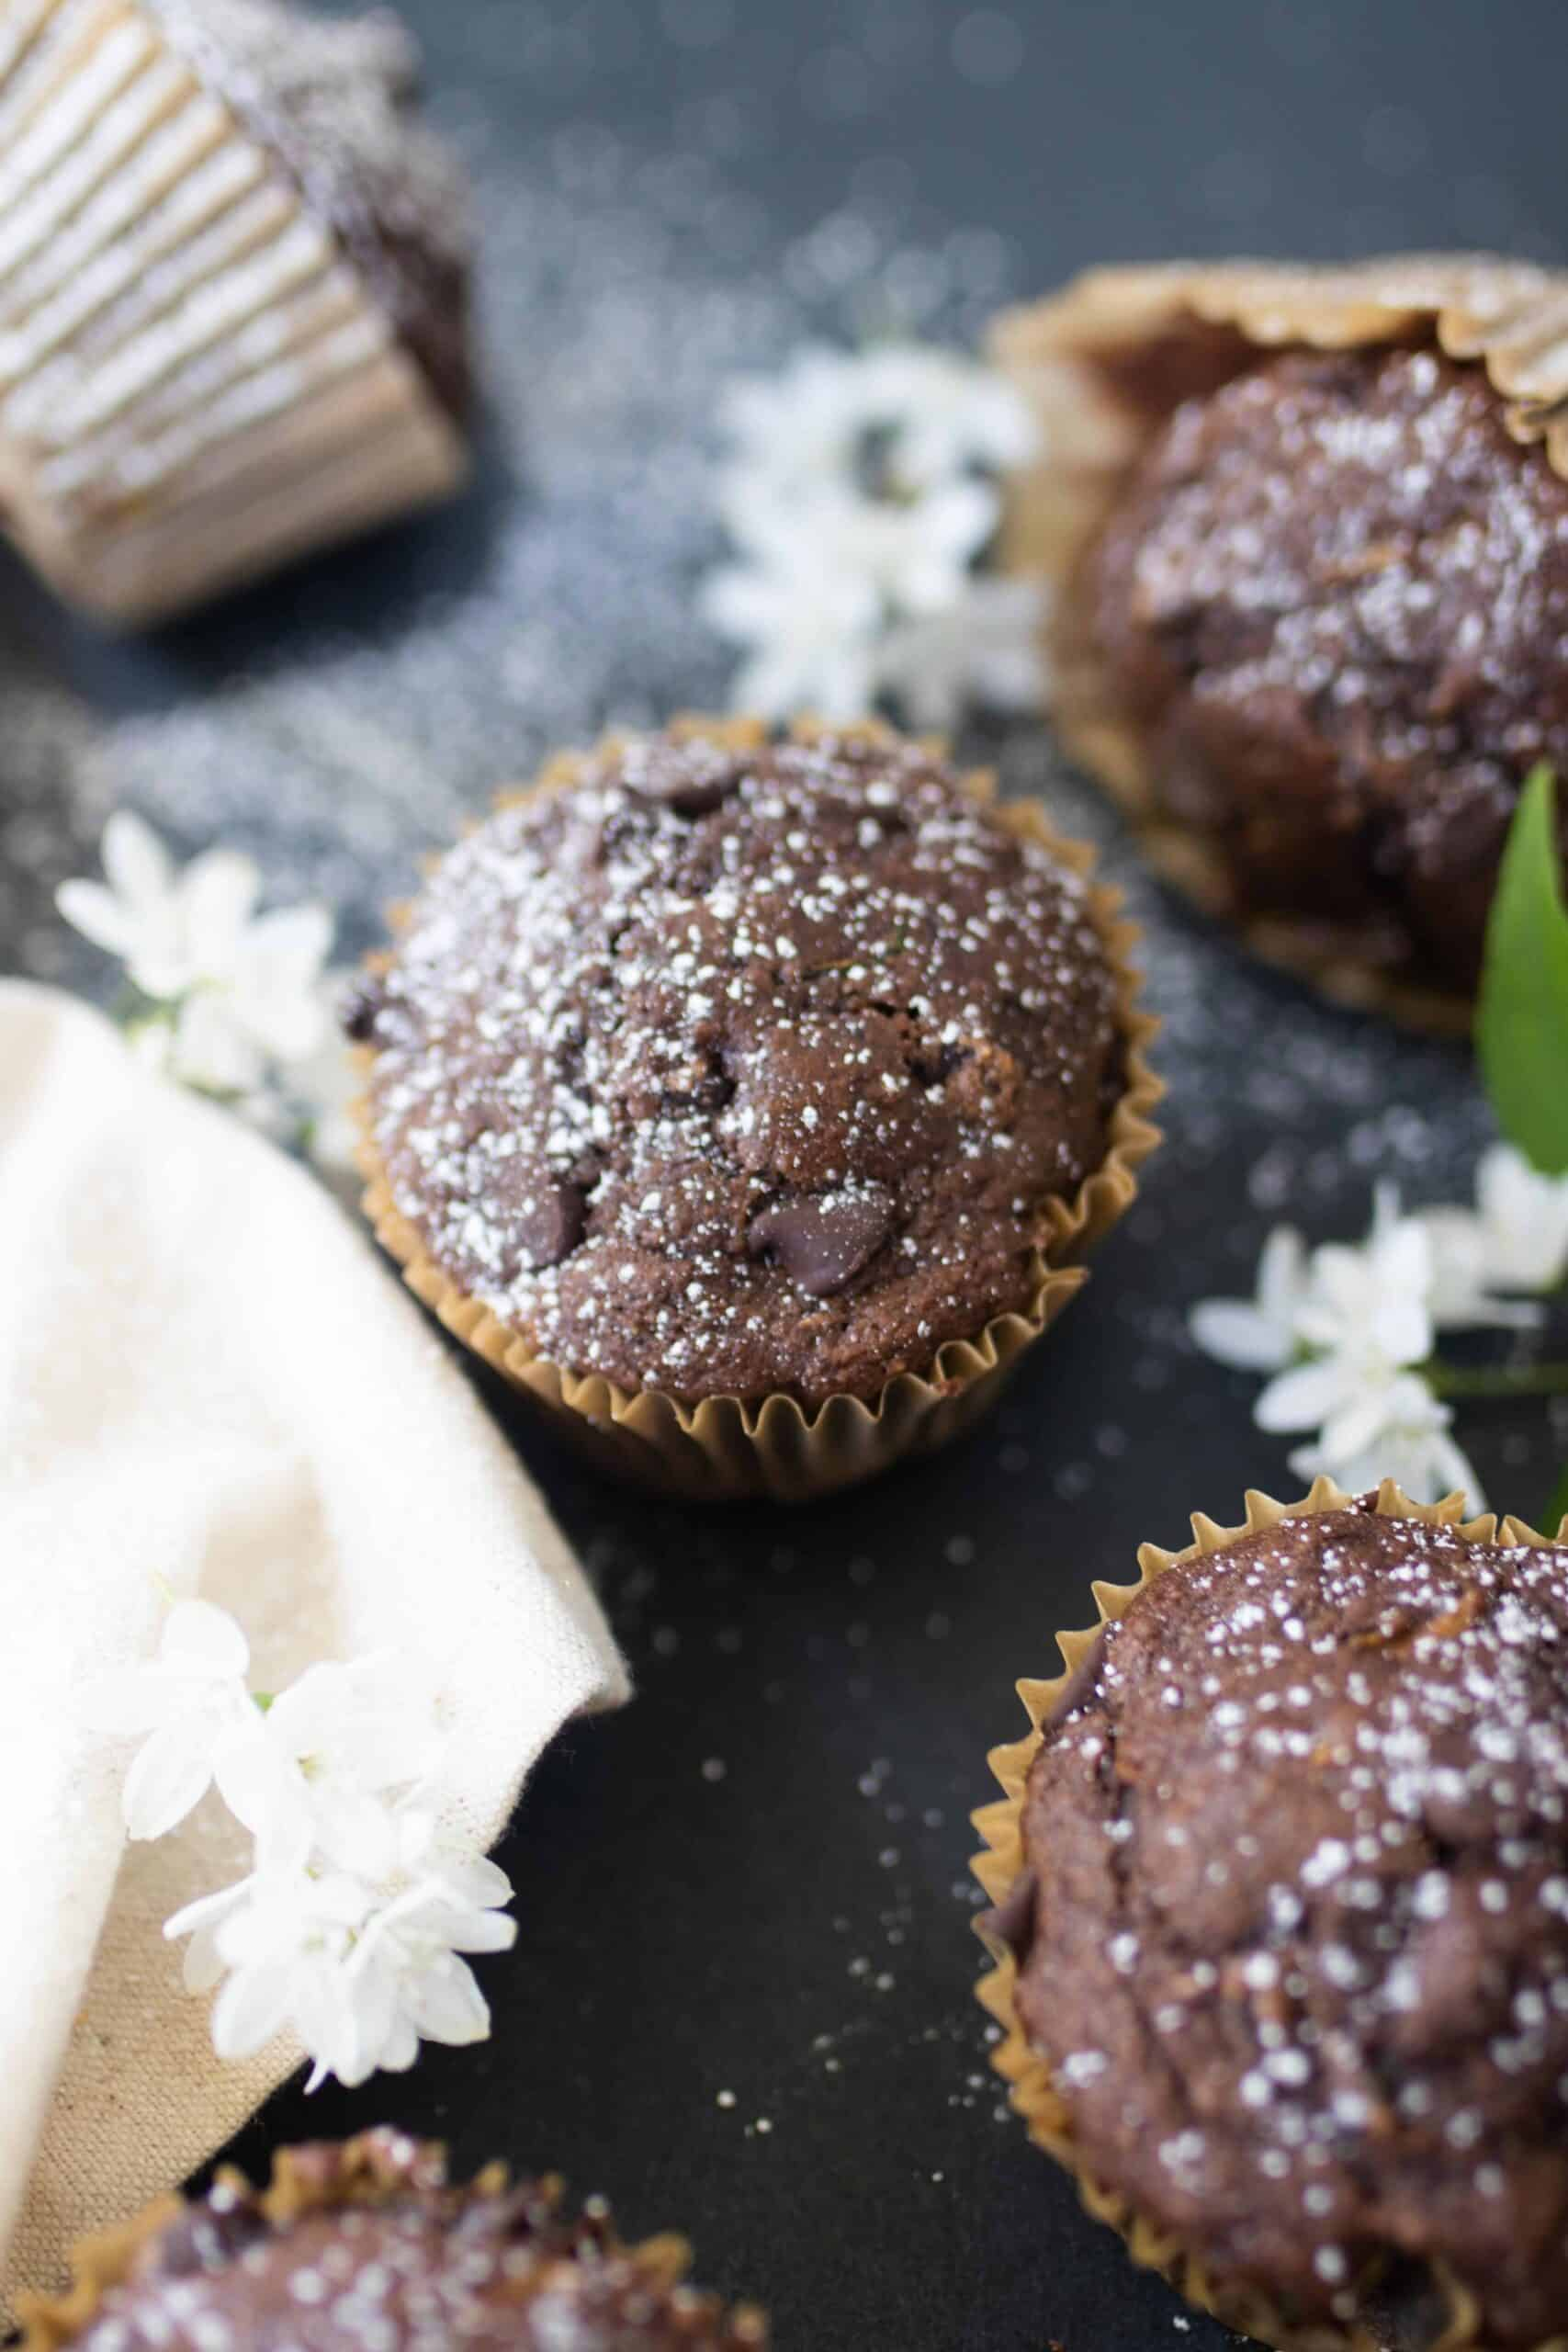 sourdough chocolate zucchini muffins spread out on a black countertop with white flowers and a white napkin on the countertop